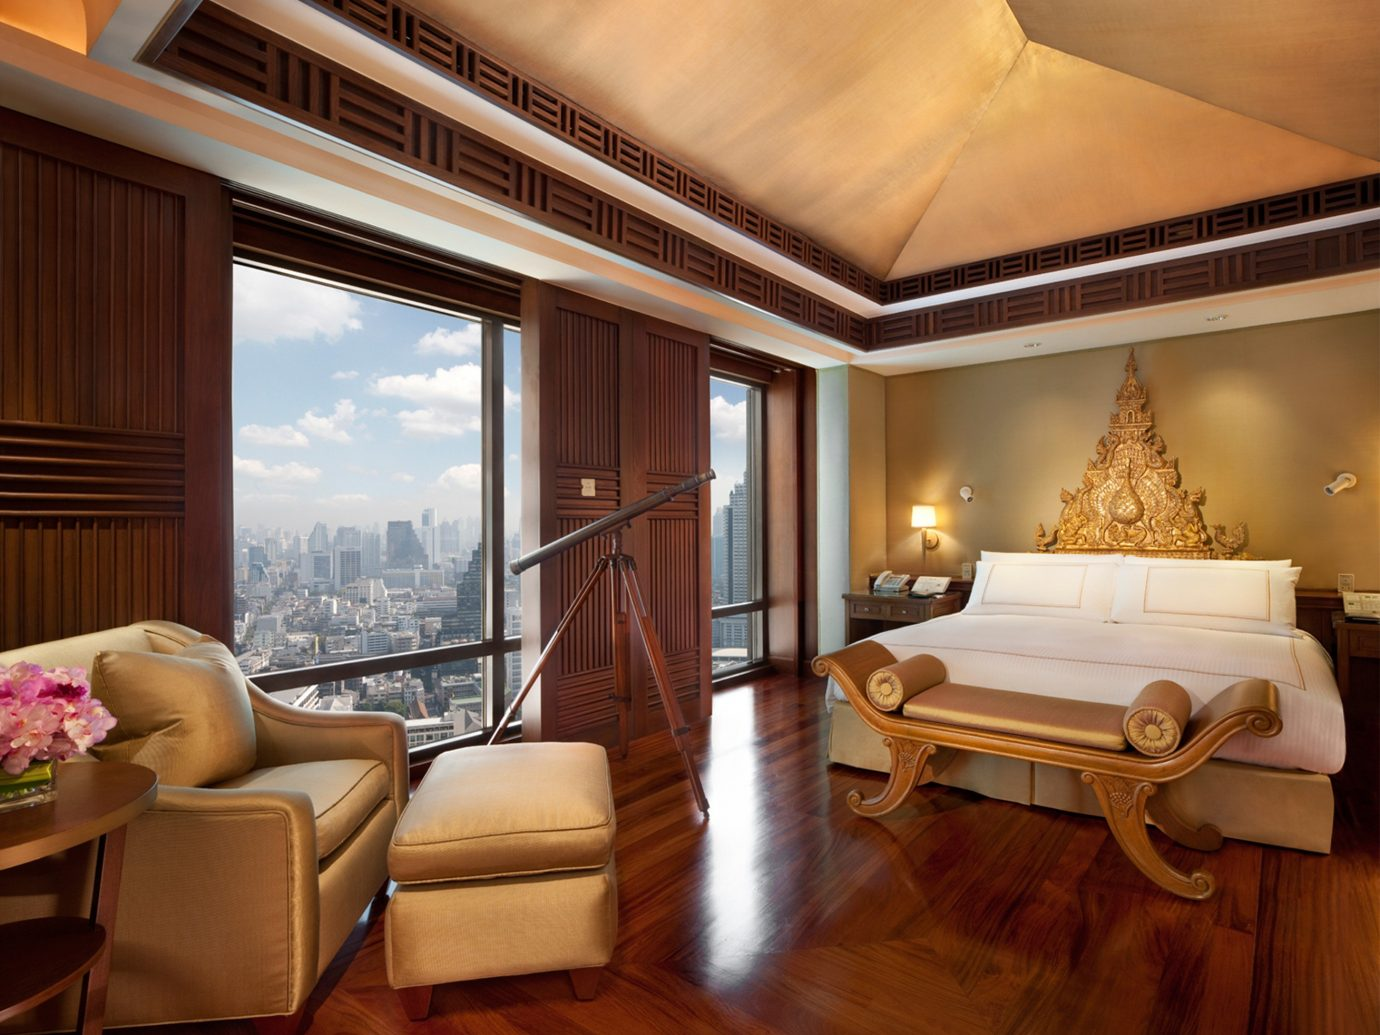 Bedroom City Hotels Romance Scenic views indoor floor window room property ceiling living room estate Suite home interior design real estate mansion Villa furniture